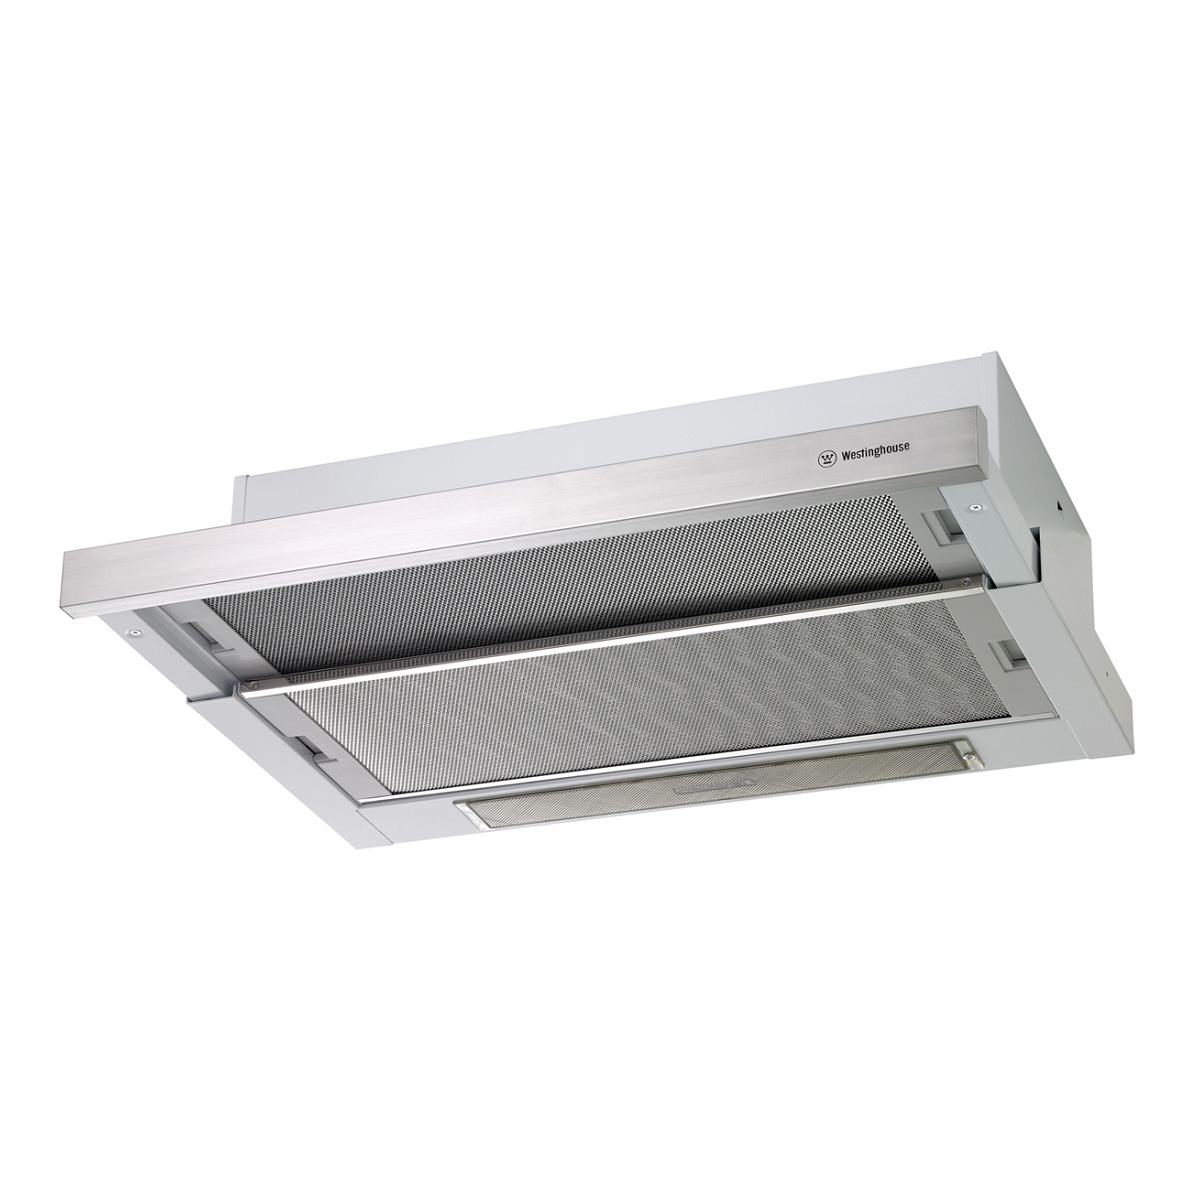 Westinghouse Slide Out Rangehood WRH608IS